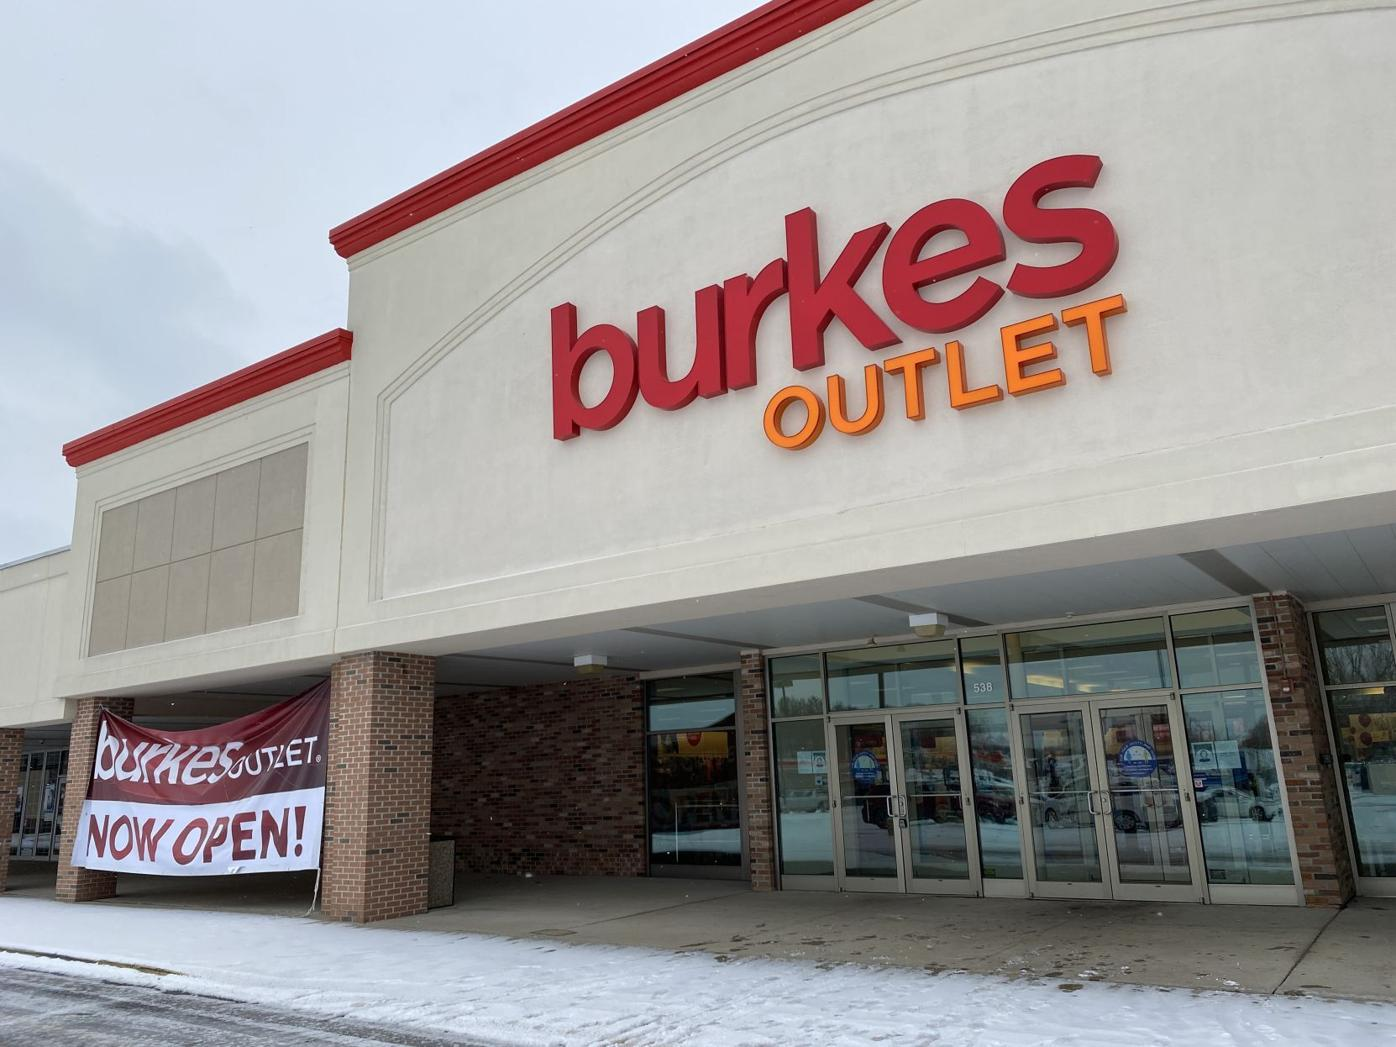 Burkes Outlet of Jackson